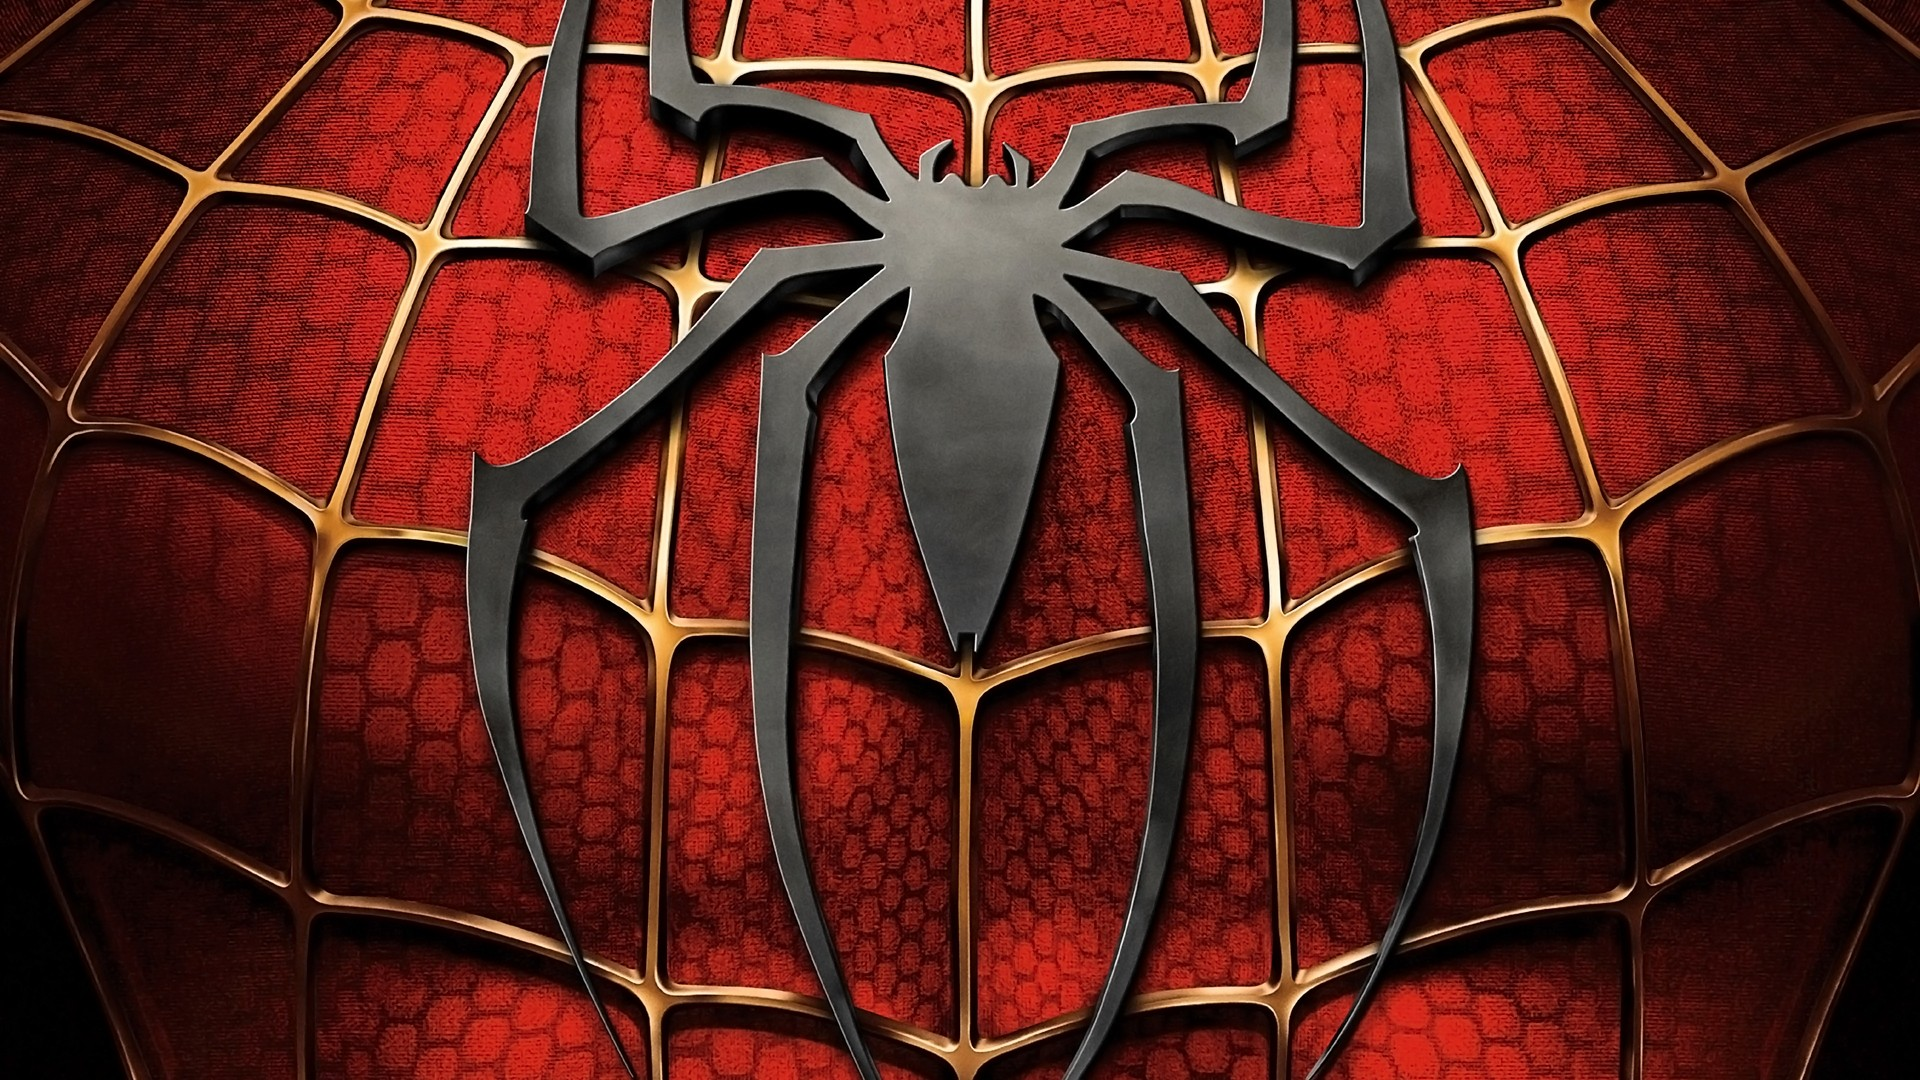 spider man logo spiderman desktop 1920x1080 hd wallpaper 909405jpg 1920x1080